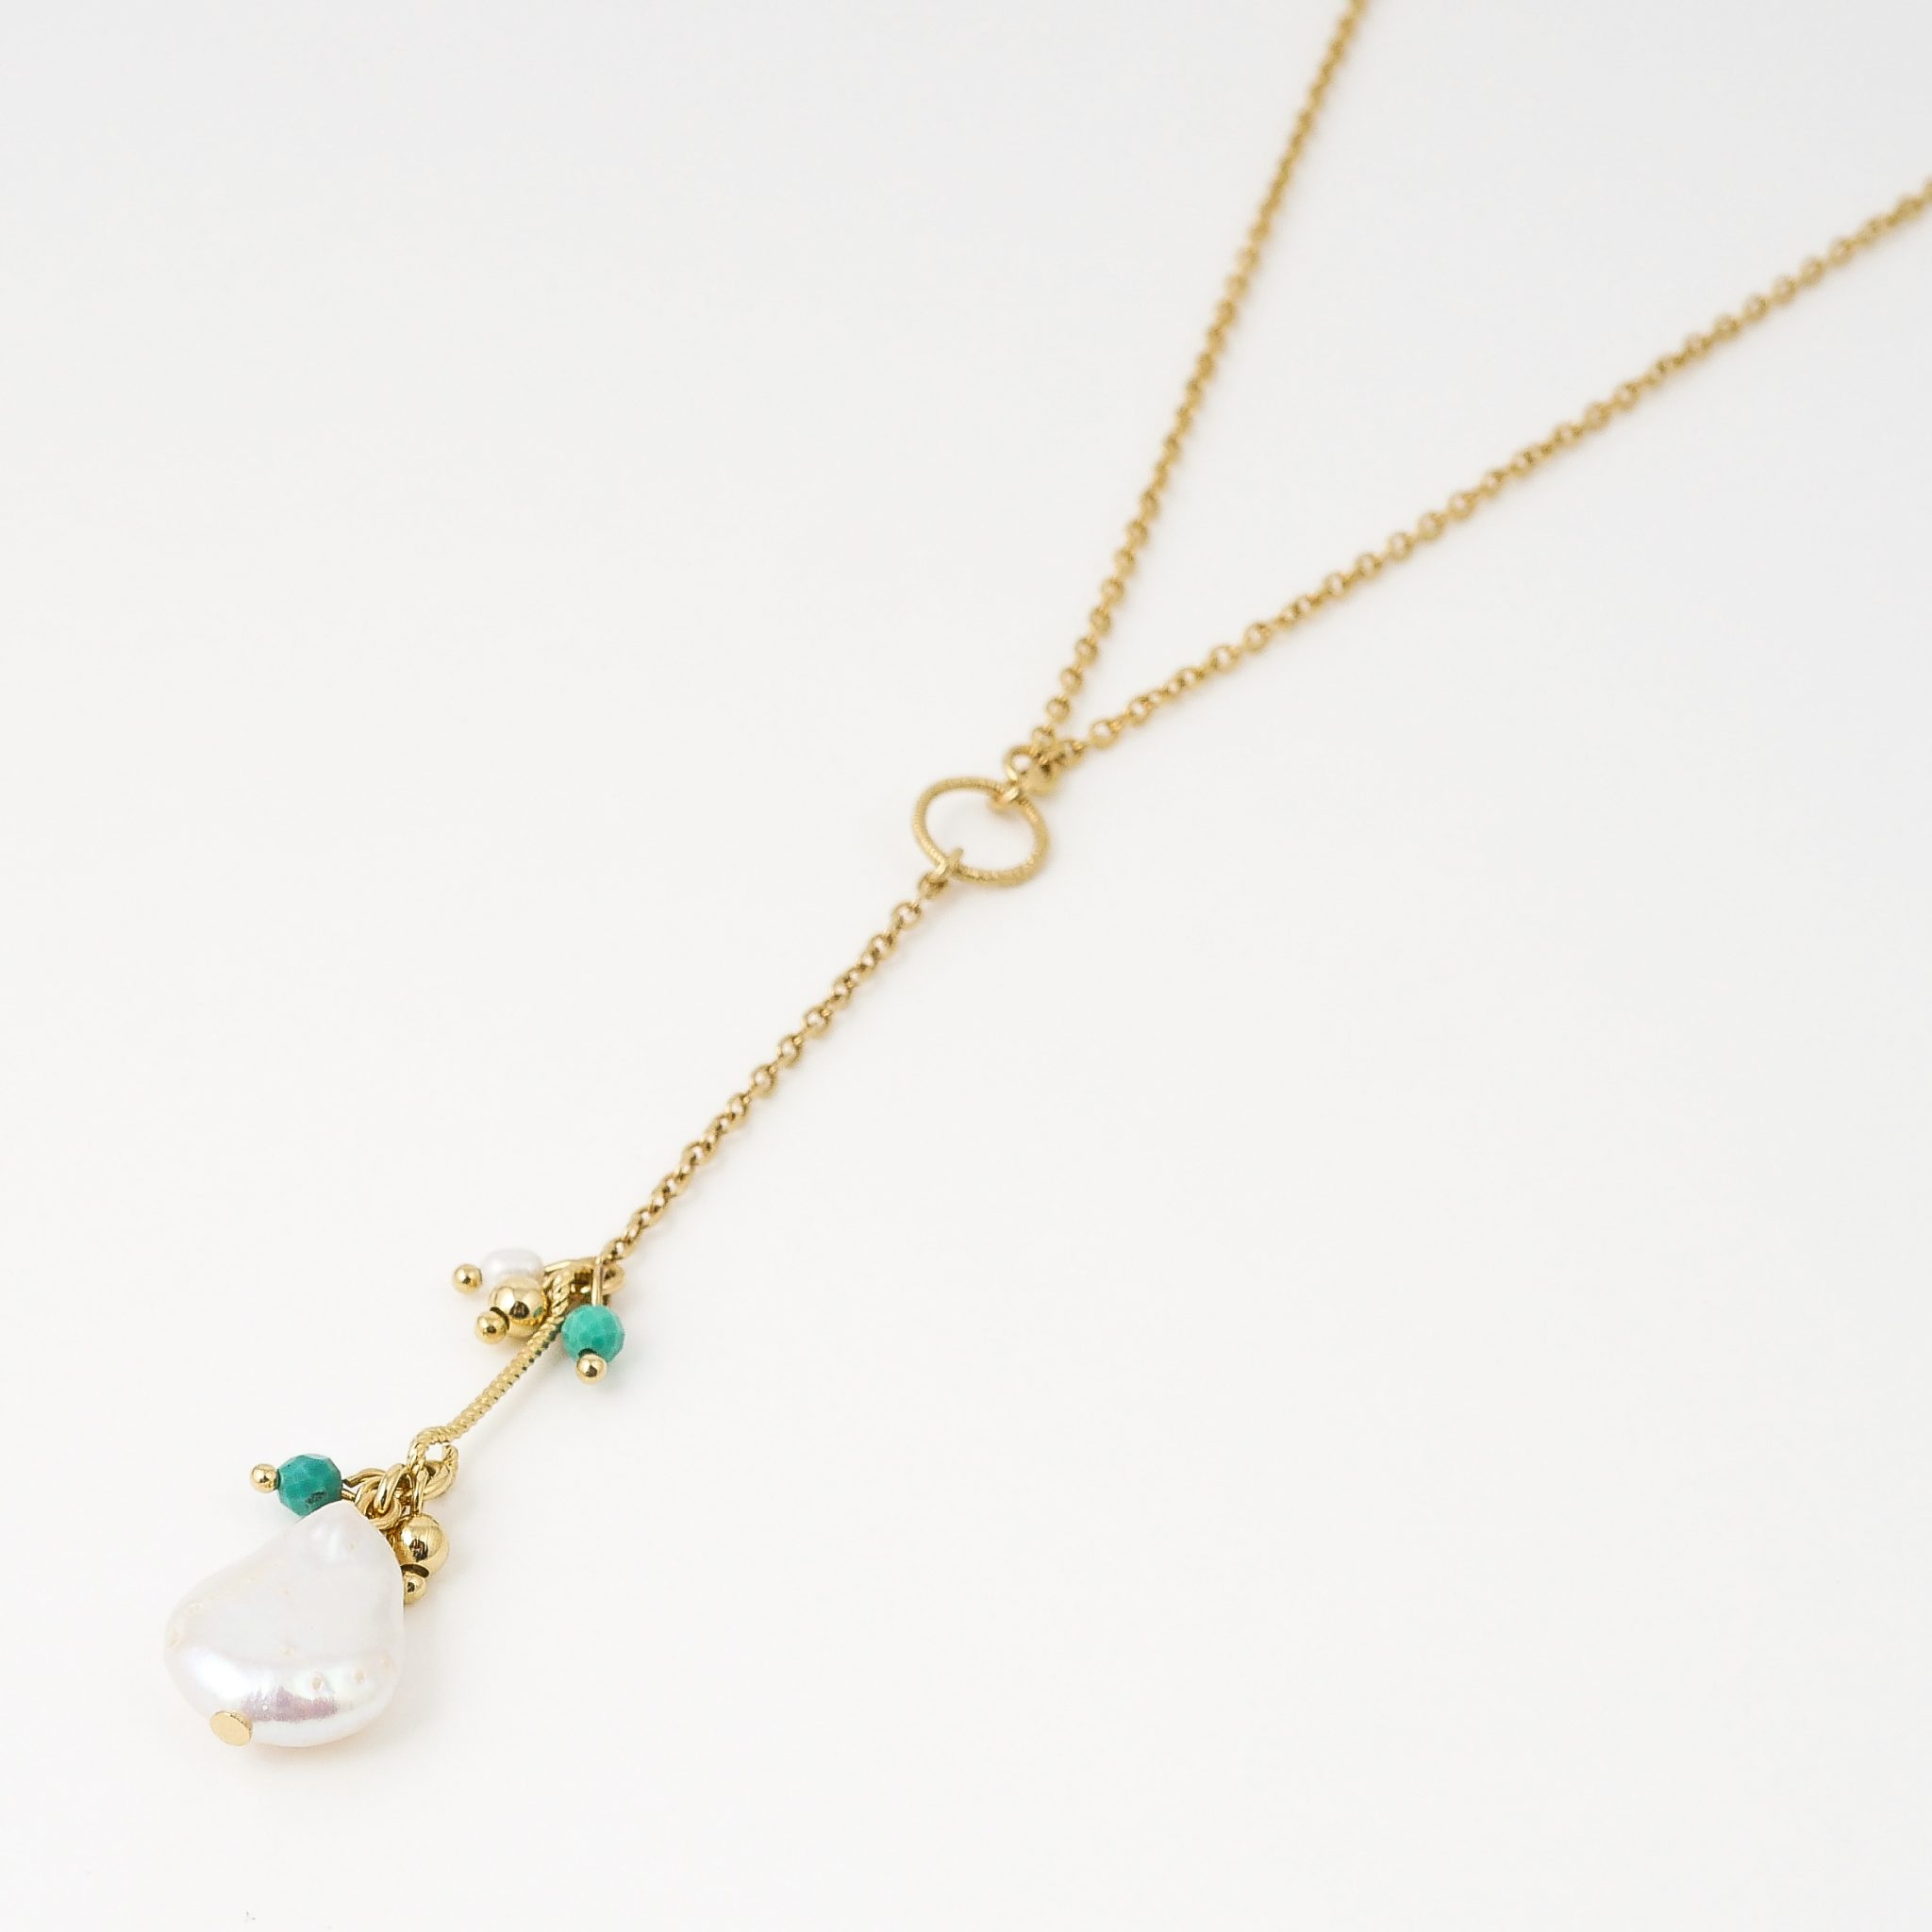 OLYMPE_COLLIER_TURQUOISE